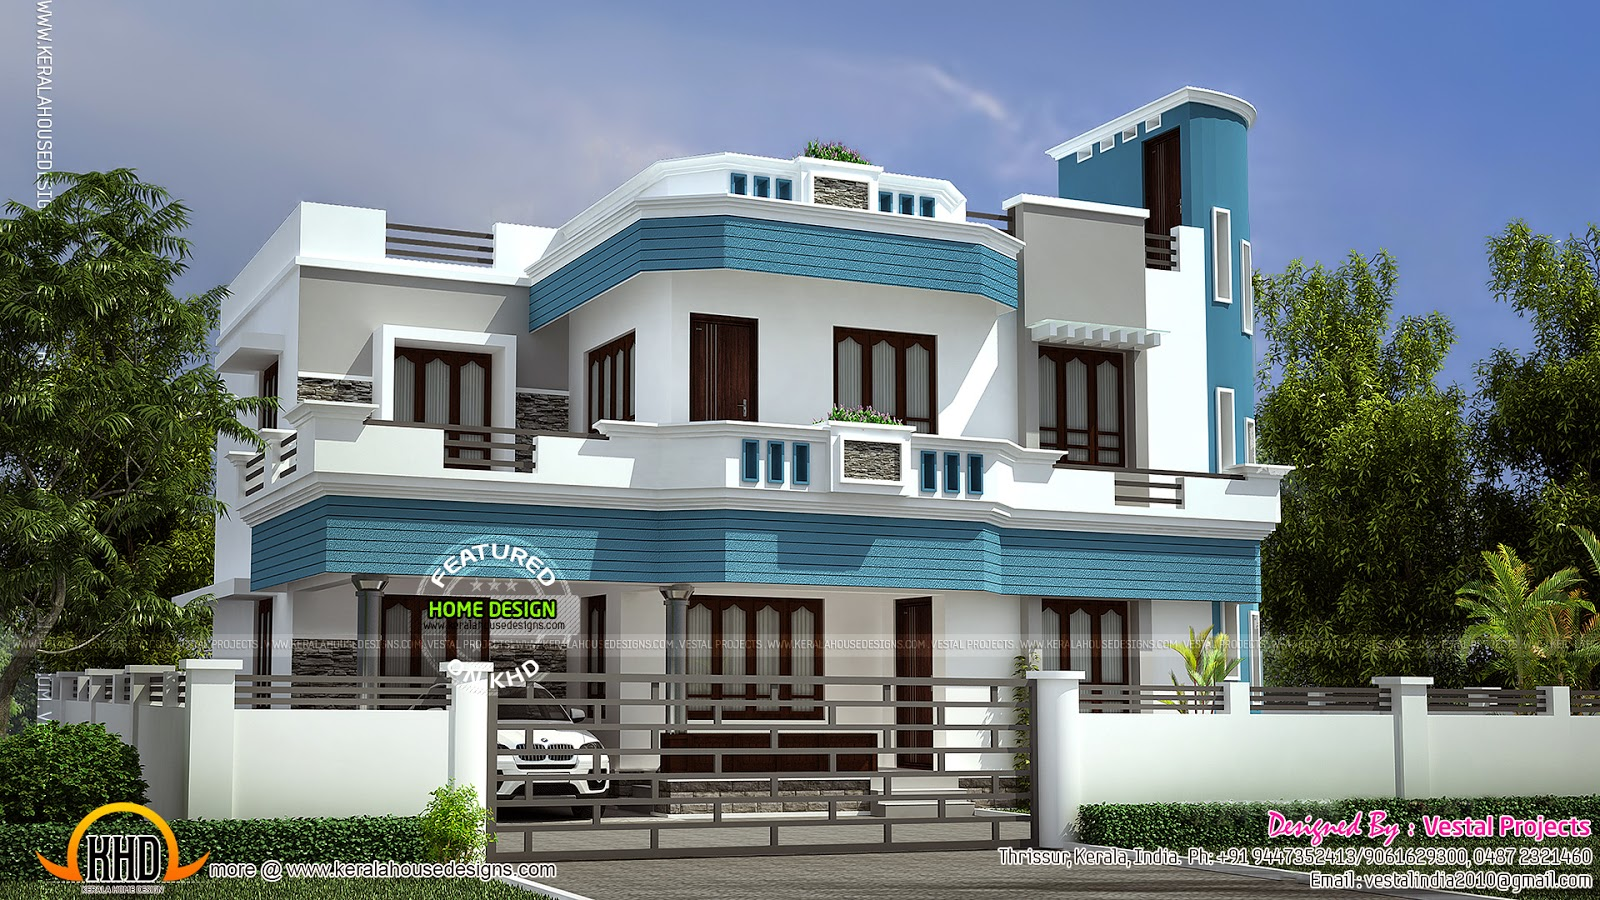 Awesome house by vestal projects kerala home design and for Home design pictures